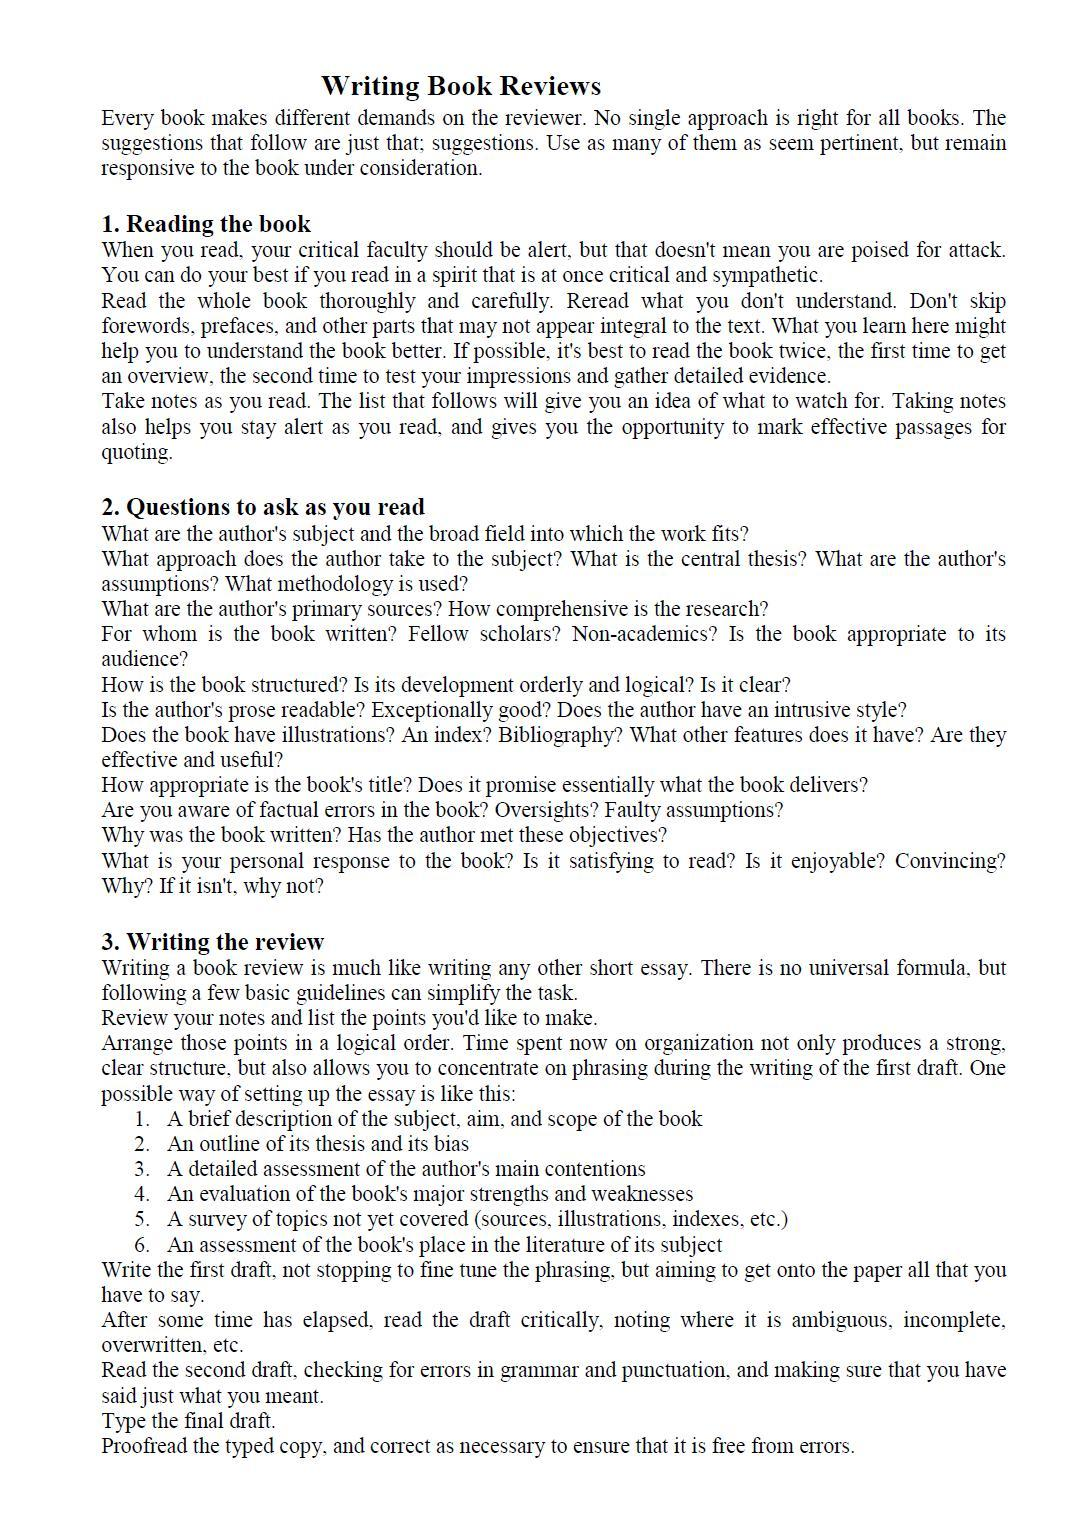 006 Essay Example How To Write Book Review Automatic Incredible Writer Free Full